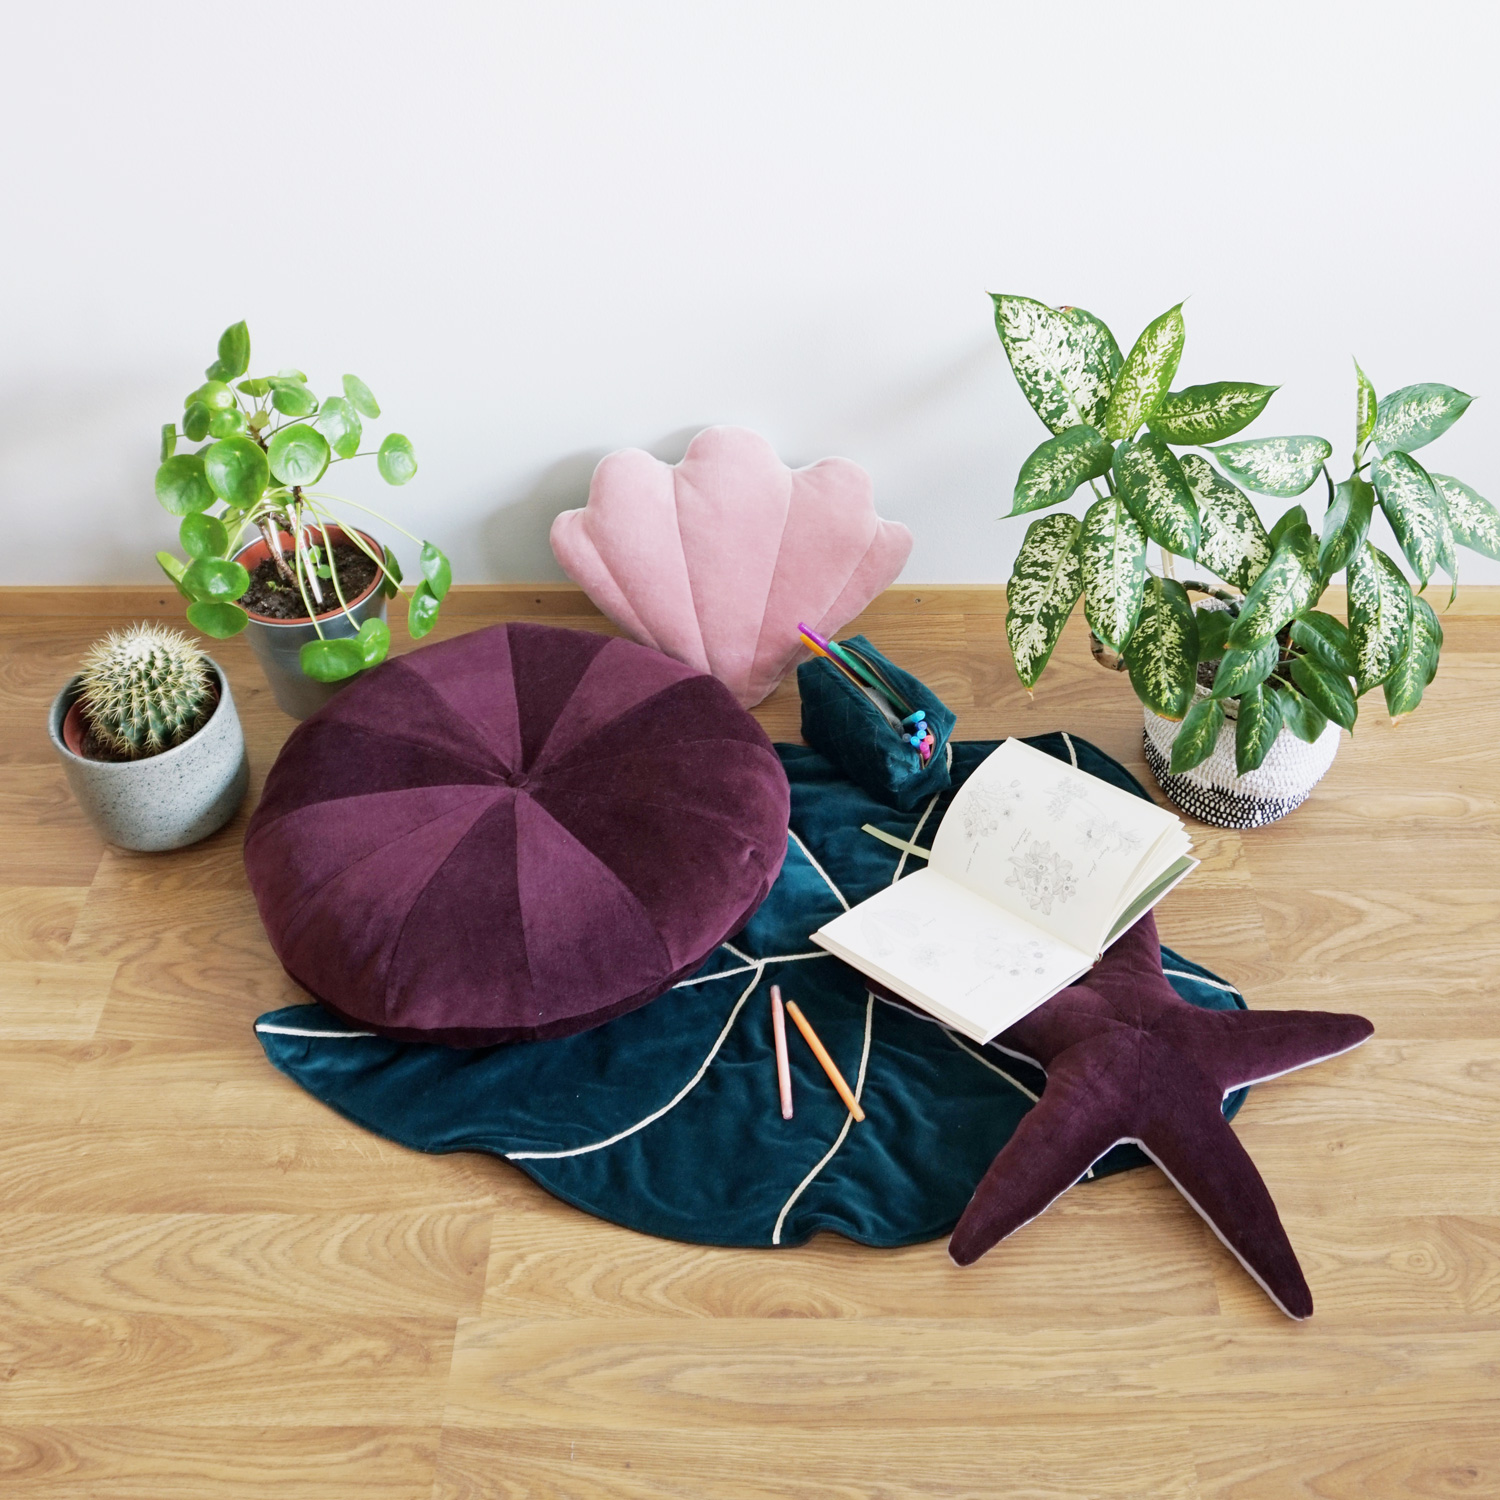 A squishy starfish shaped pillow, bringing a touch of the wild blue ocean into your home or kid's room.